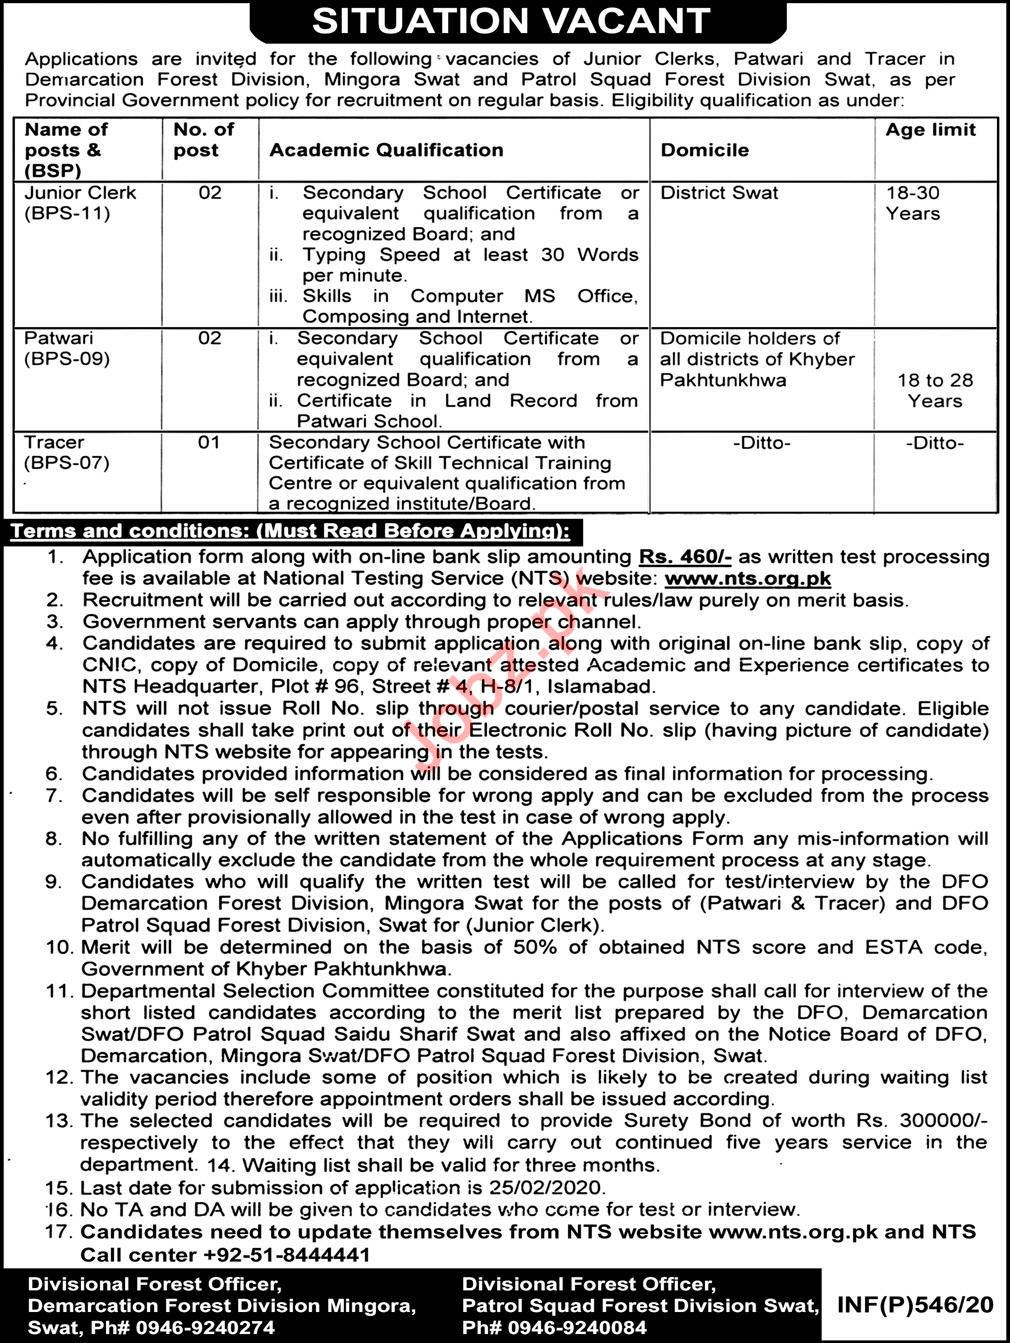 Demarcation Forest Division Swat Management Jobs via NTS